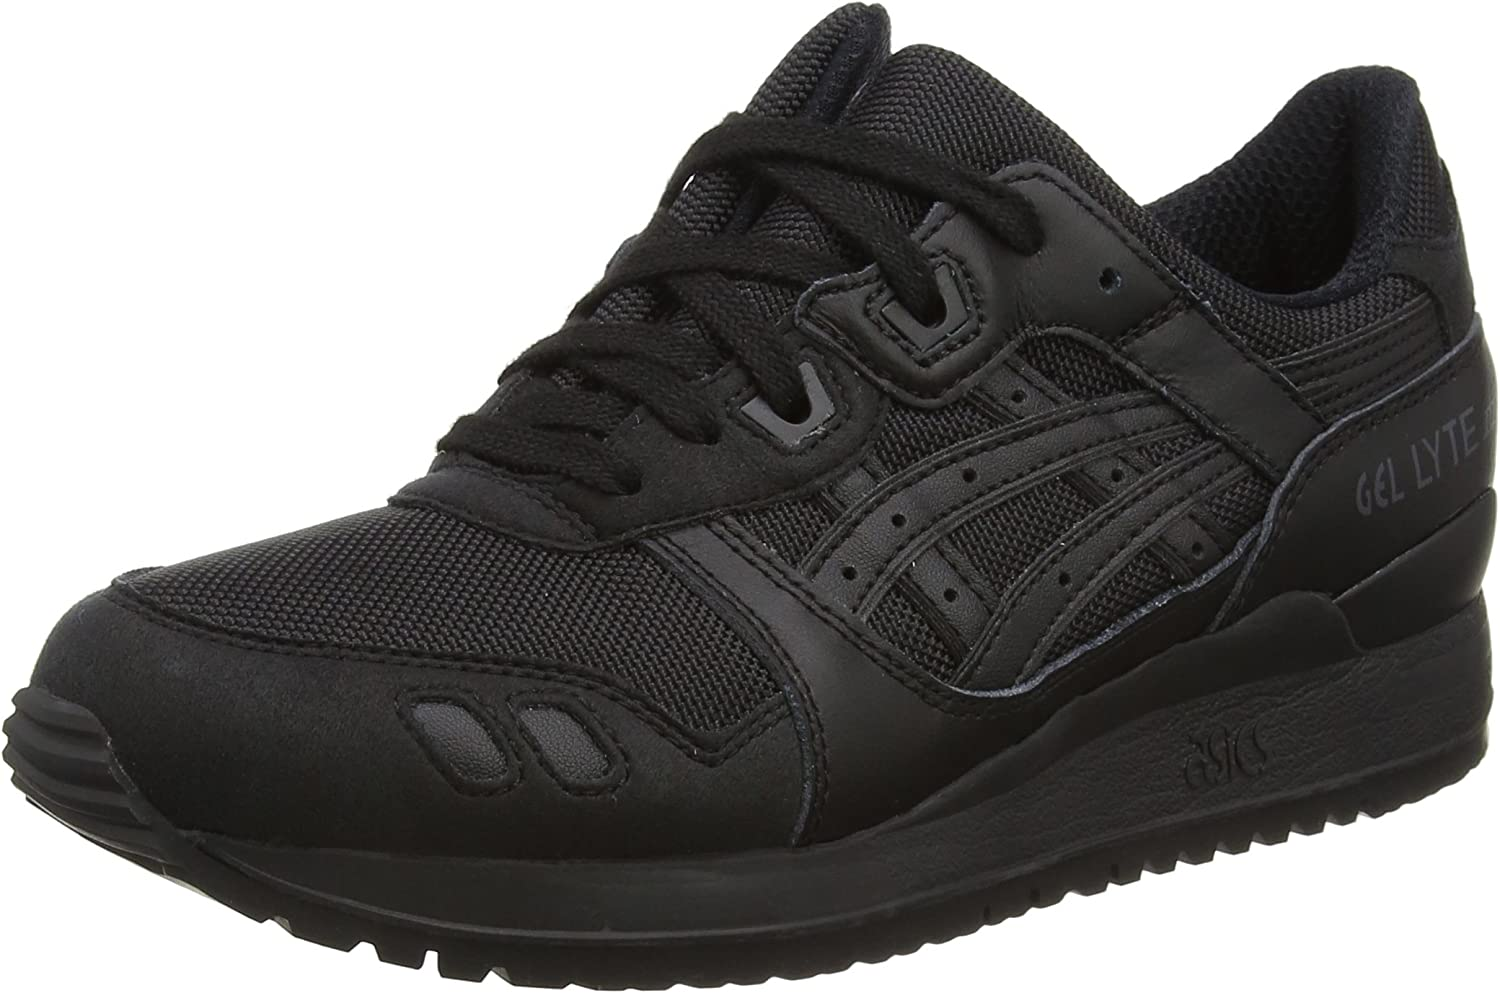 ASICS Gel-Lyte III H6B3N-9090-8H, Unisex Adults' Low-Top Sneakers